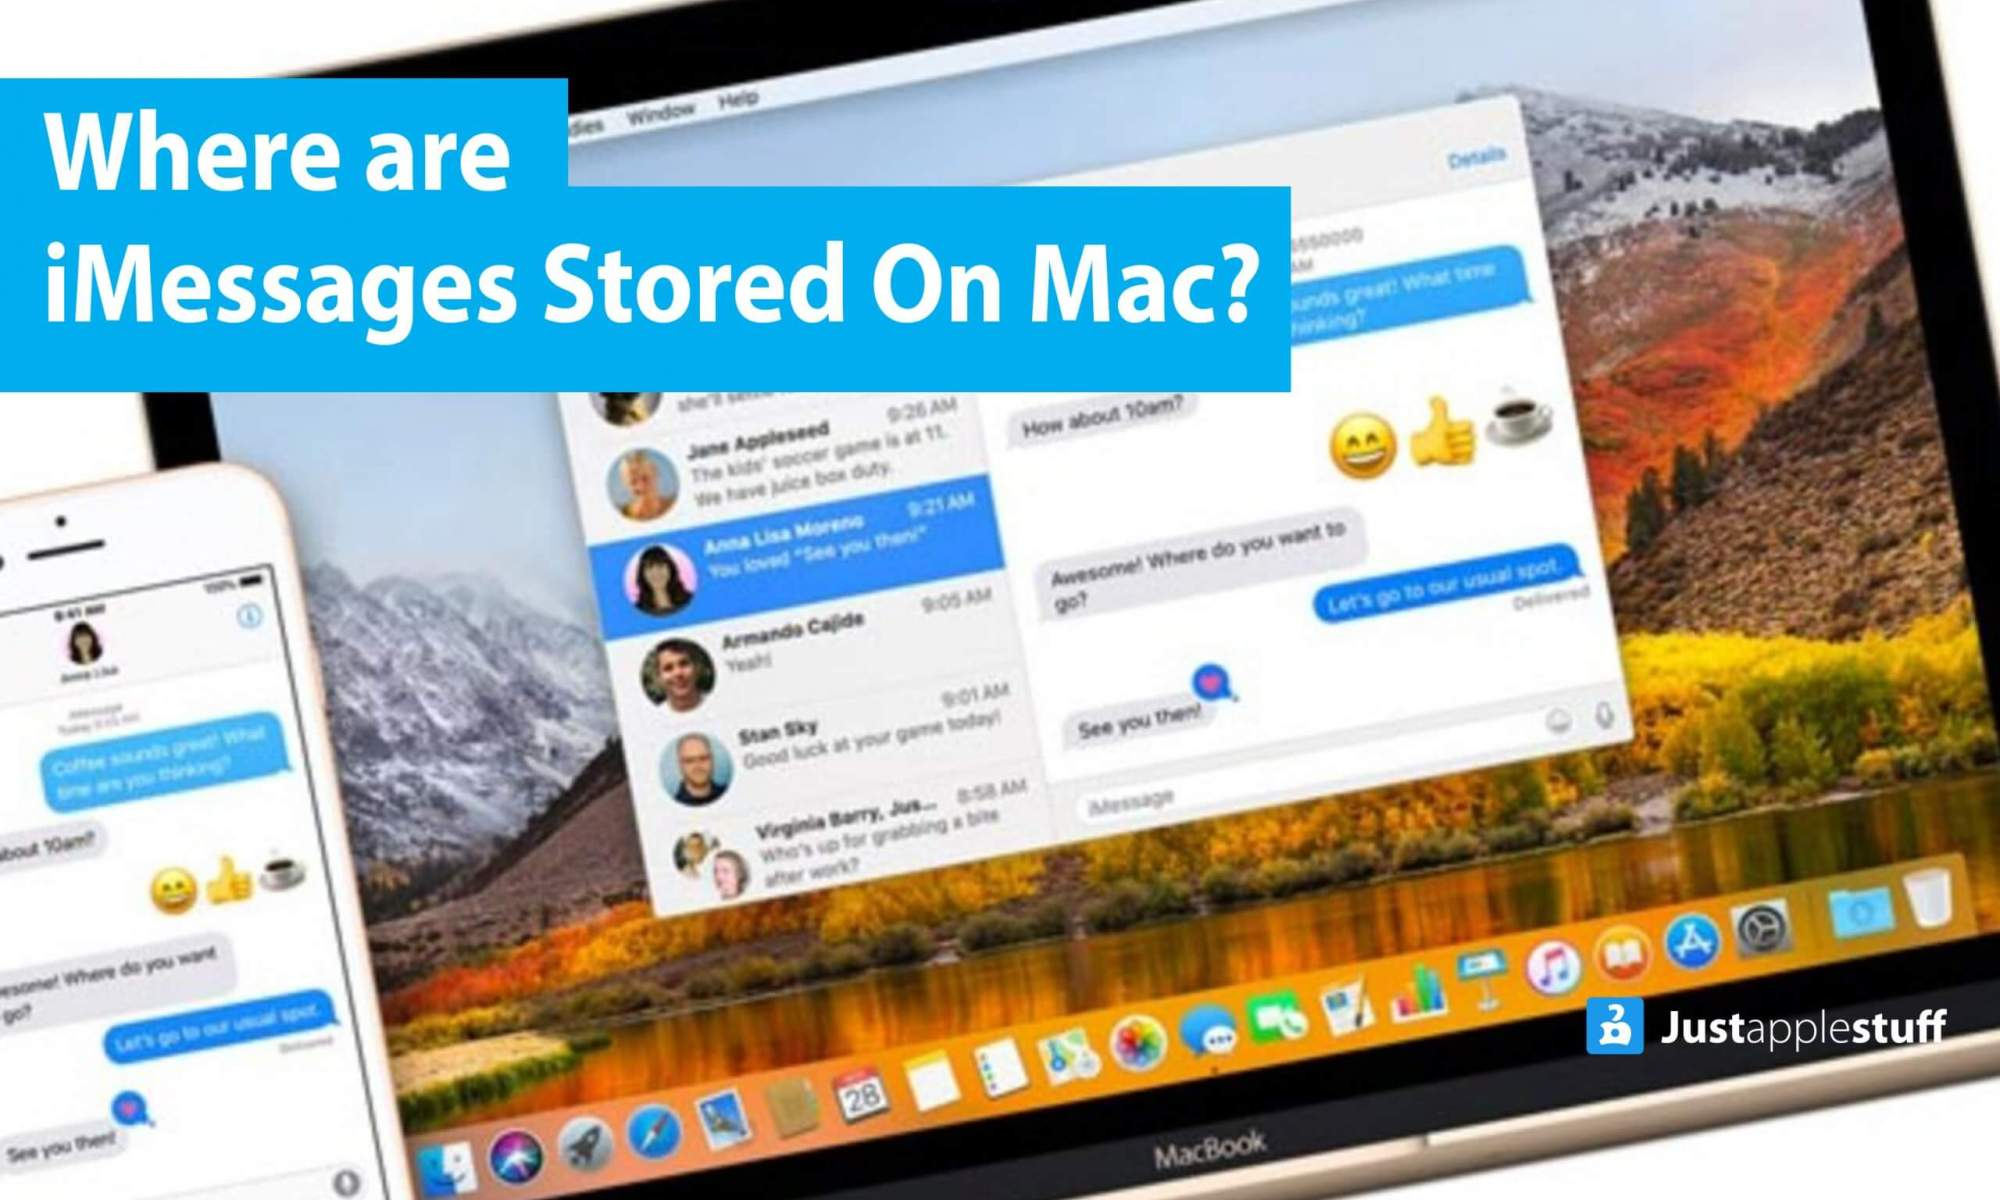 iMessages Stored On Mac